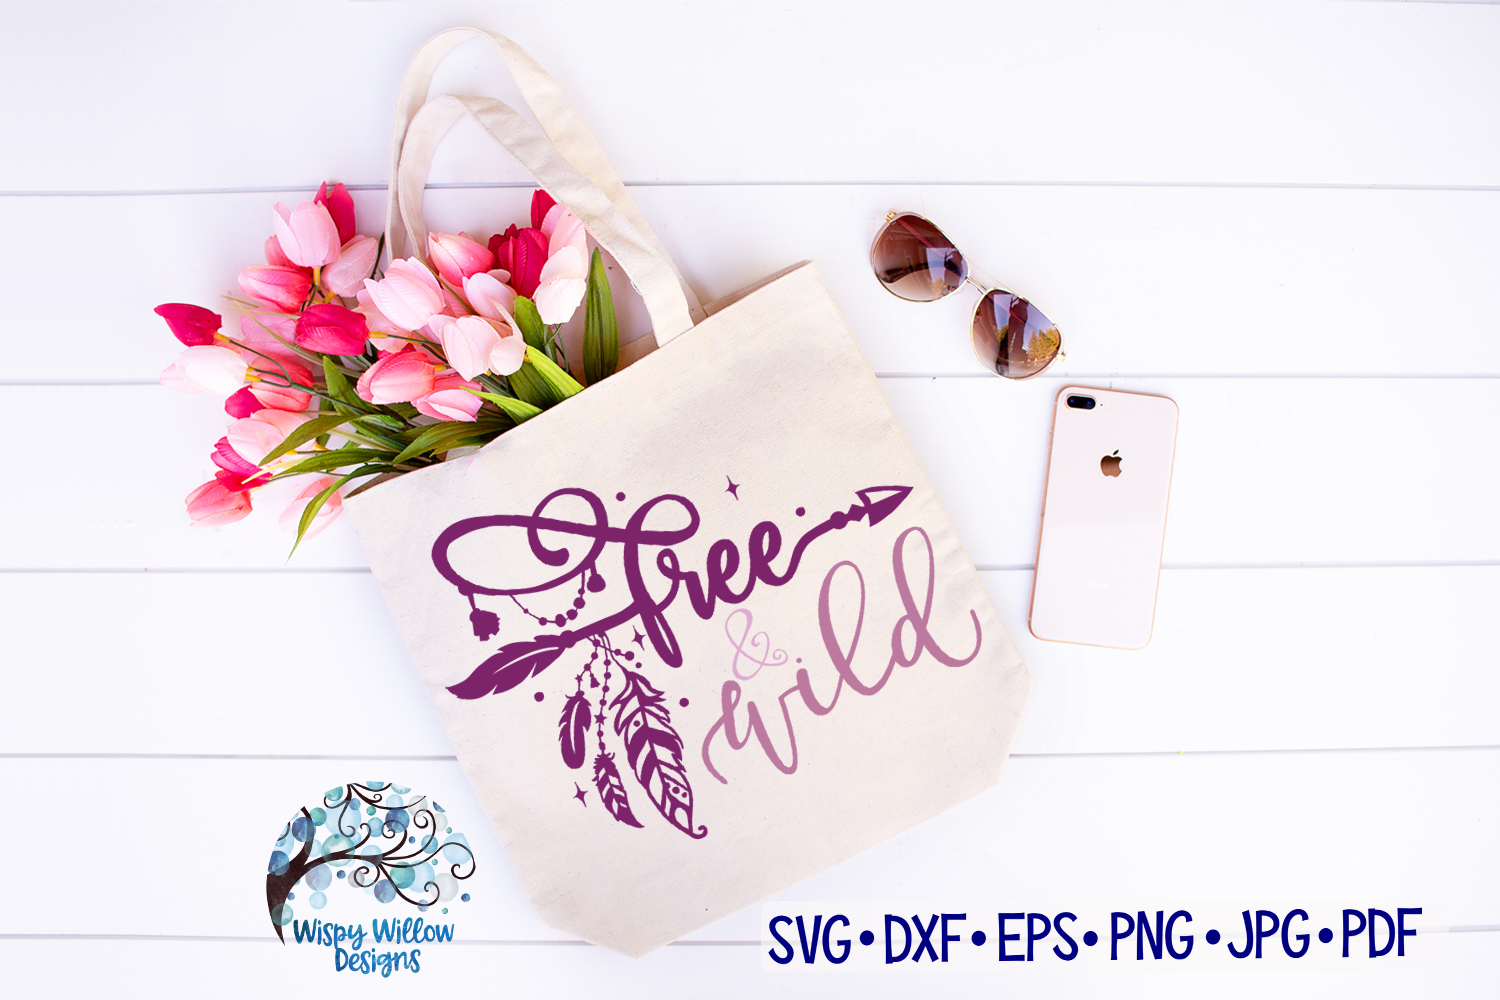 Free and Wild SVG | Boho Feather| Hippie SVG Cut File example image 2